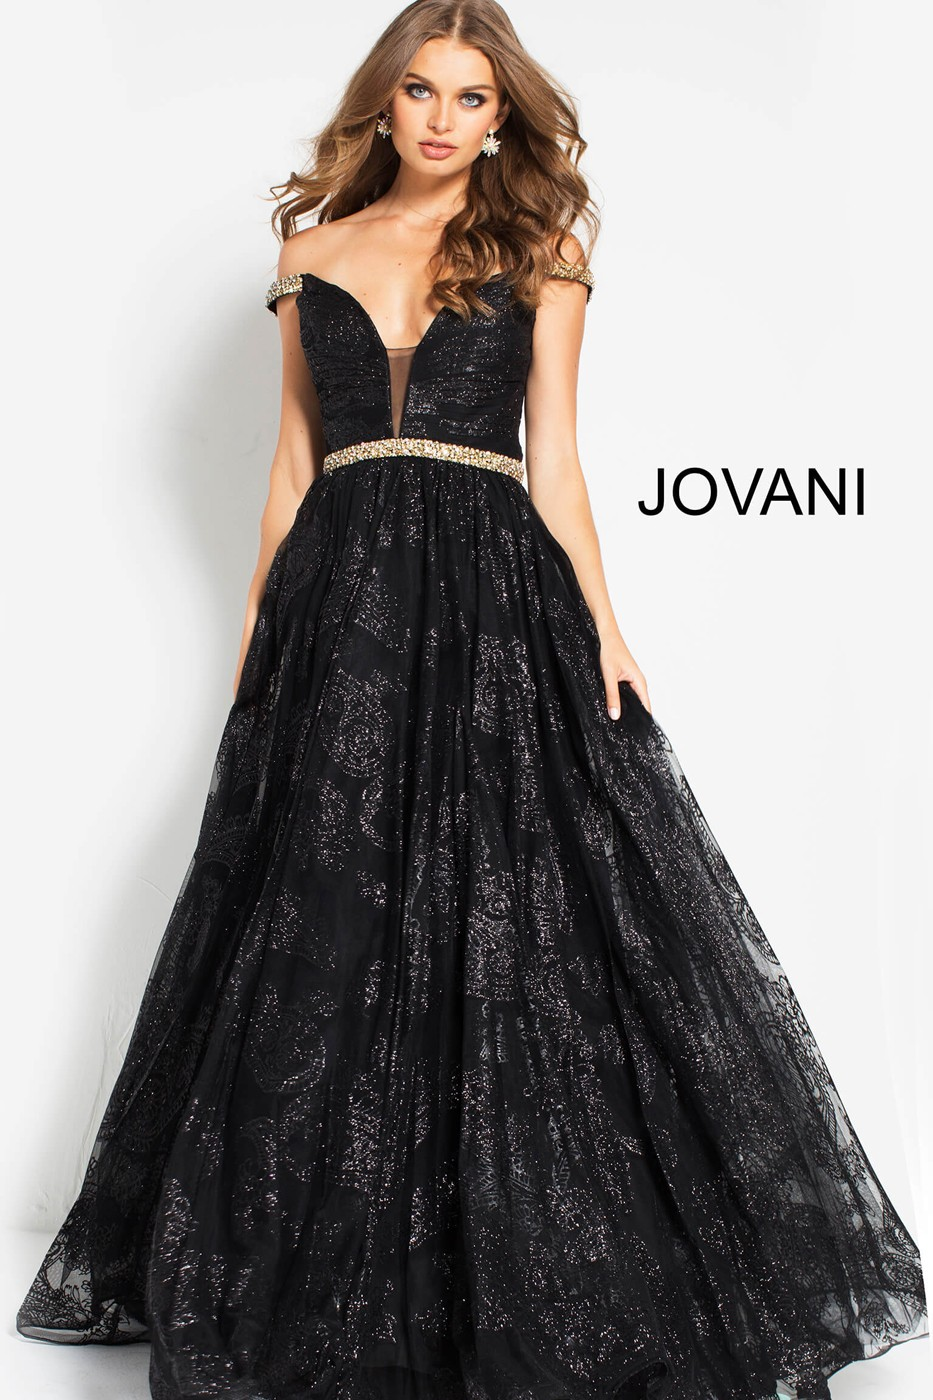 Jovani 51817 Dress - MadameBridal.com